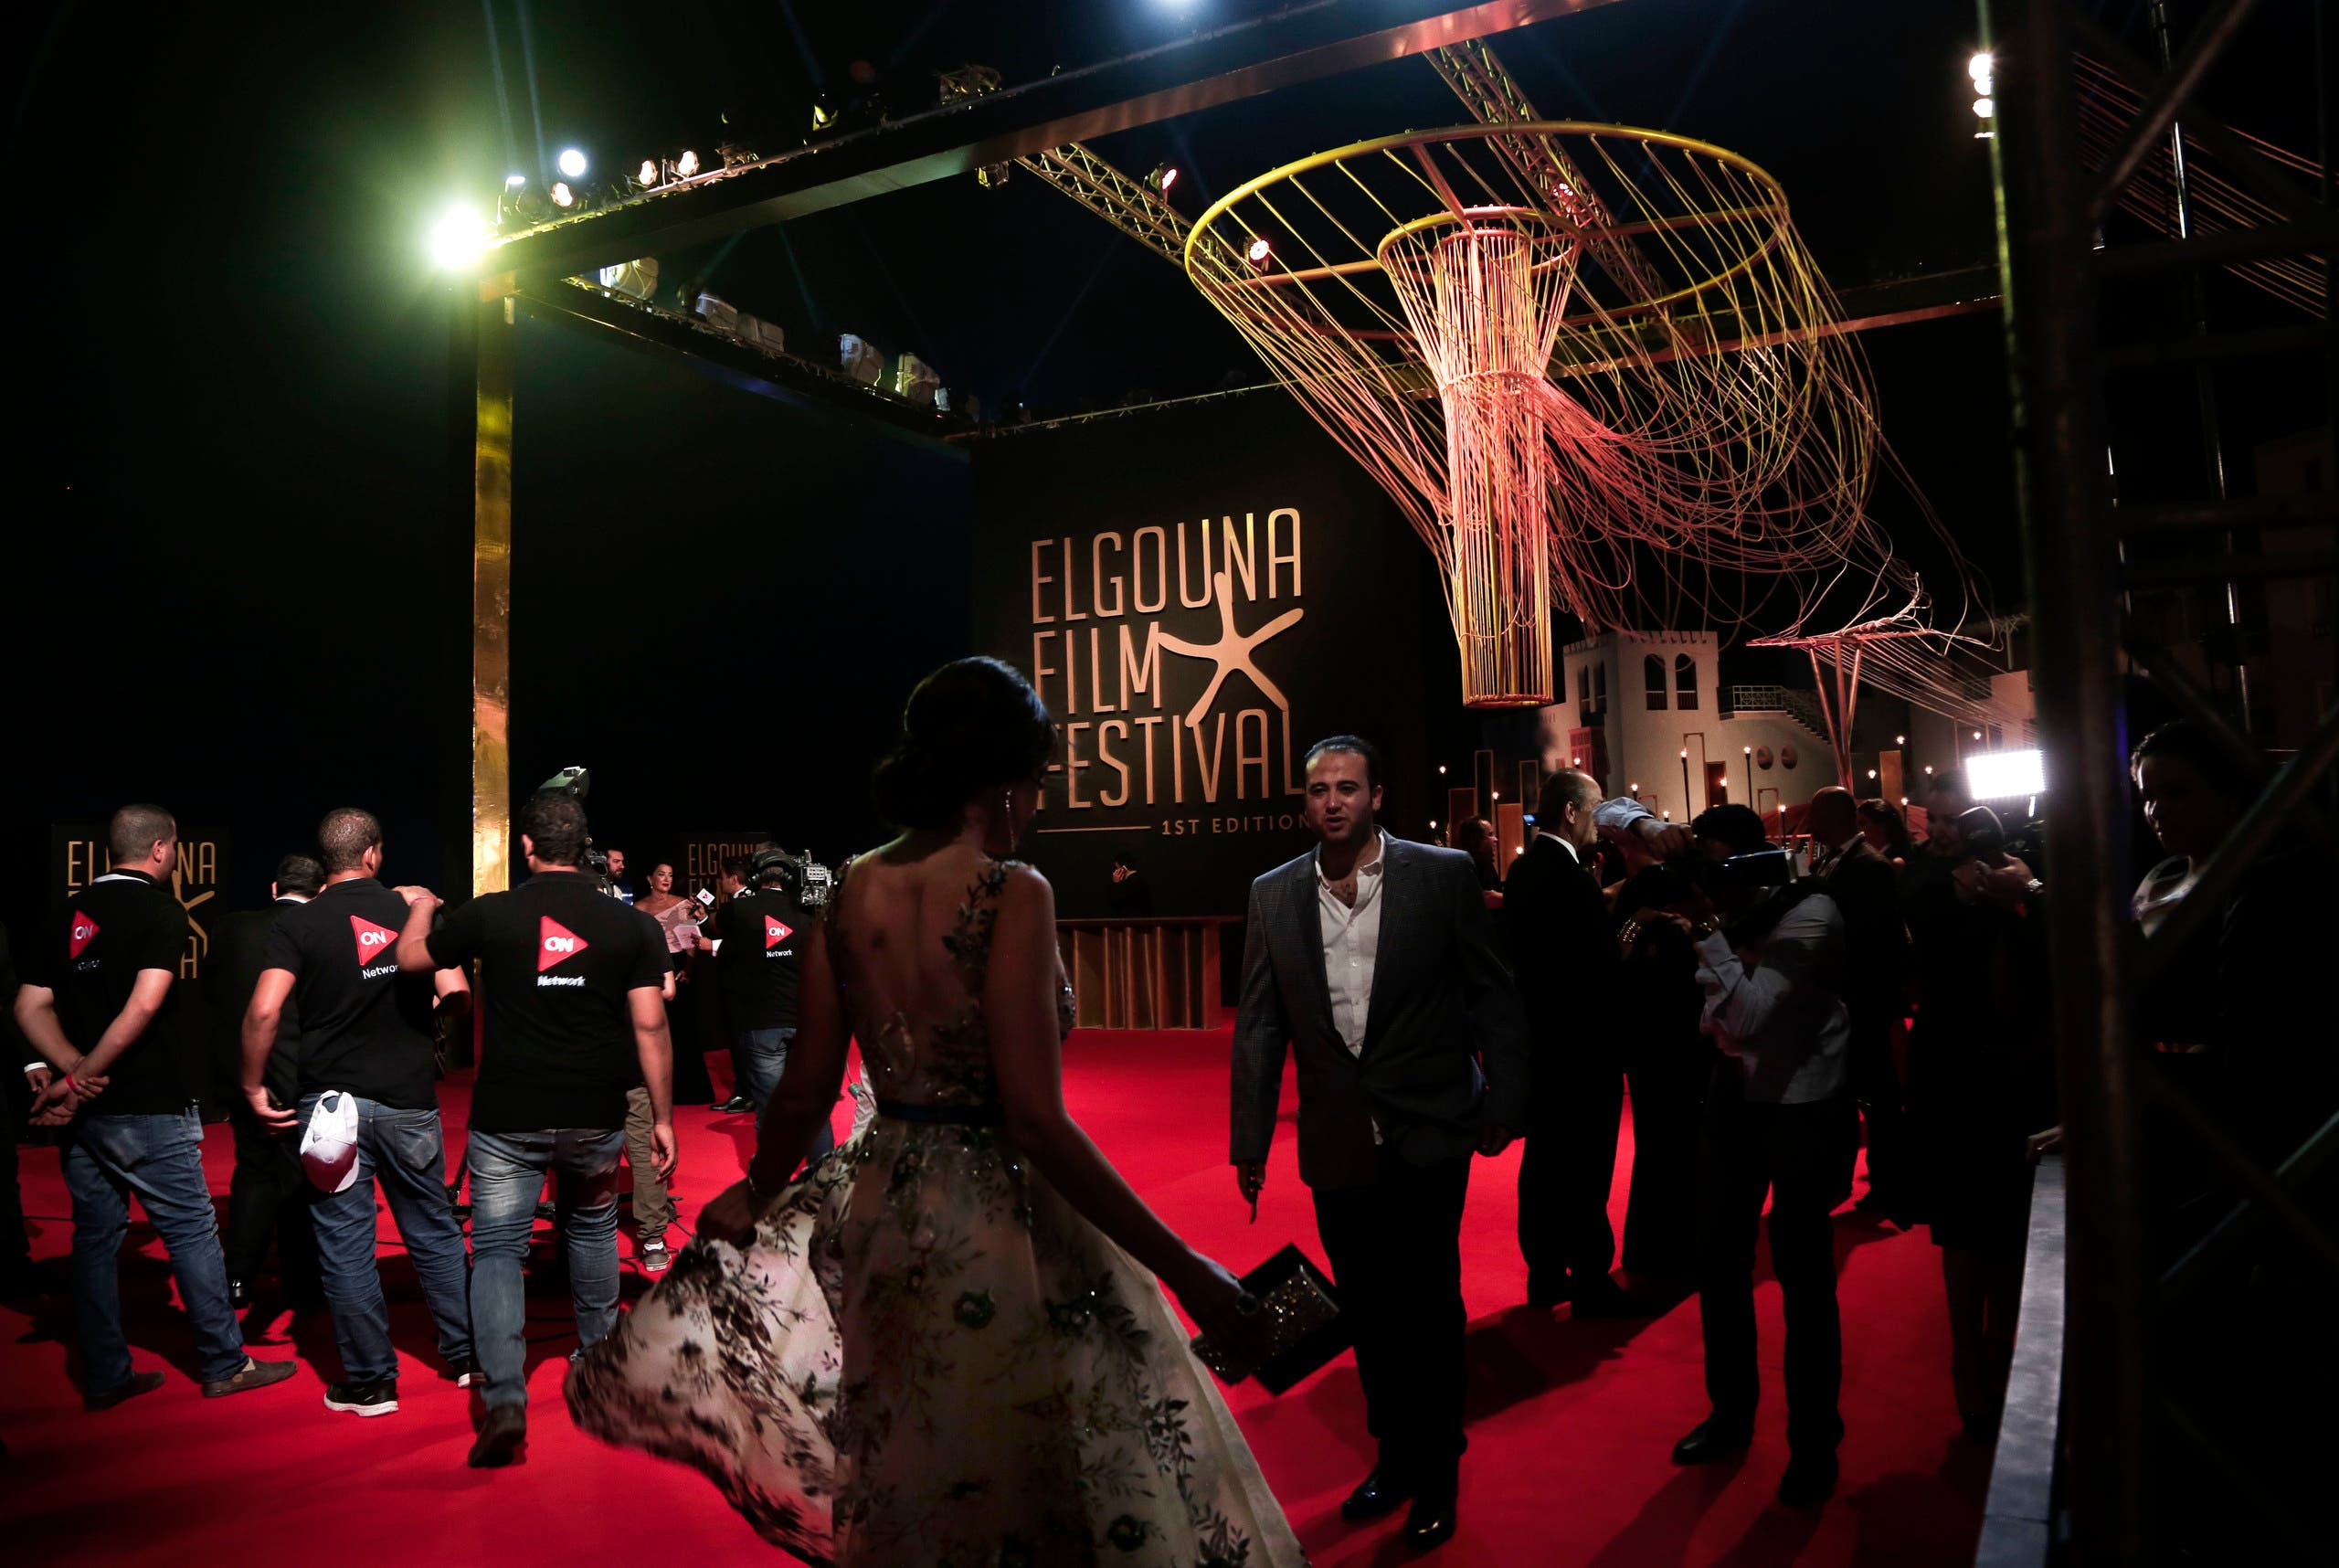 People walk on the red carpet during the first International El Gouna Film Festival, in the Red Sea resort of el-Gouna, Egypt, Friday, Sept. 22, 2017. (AP)